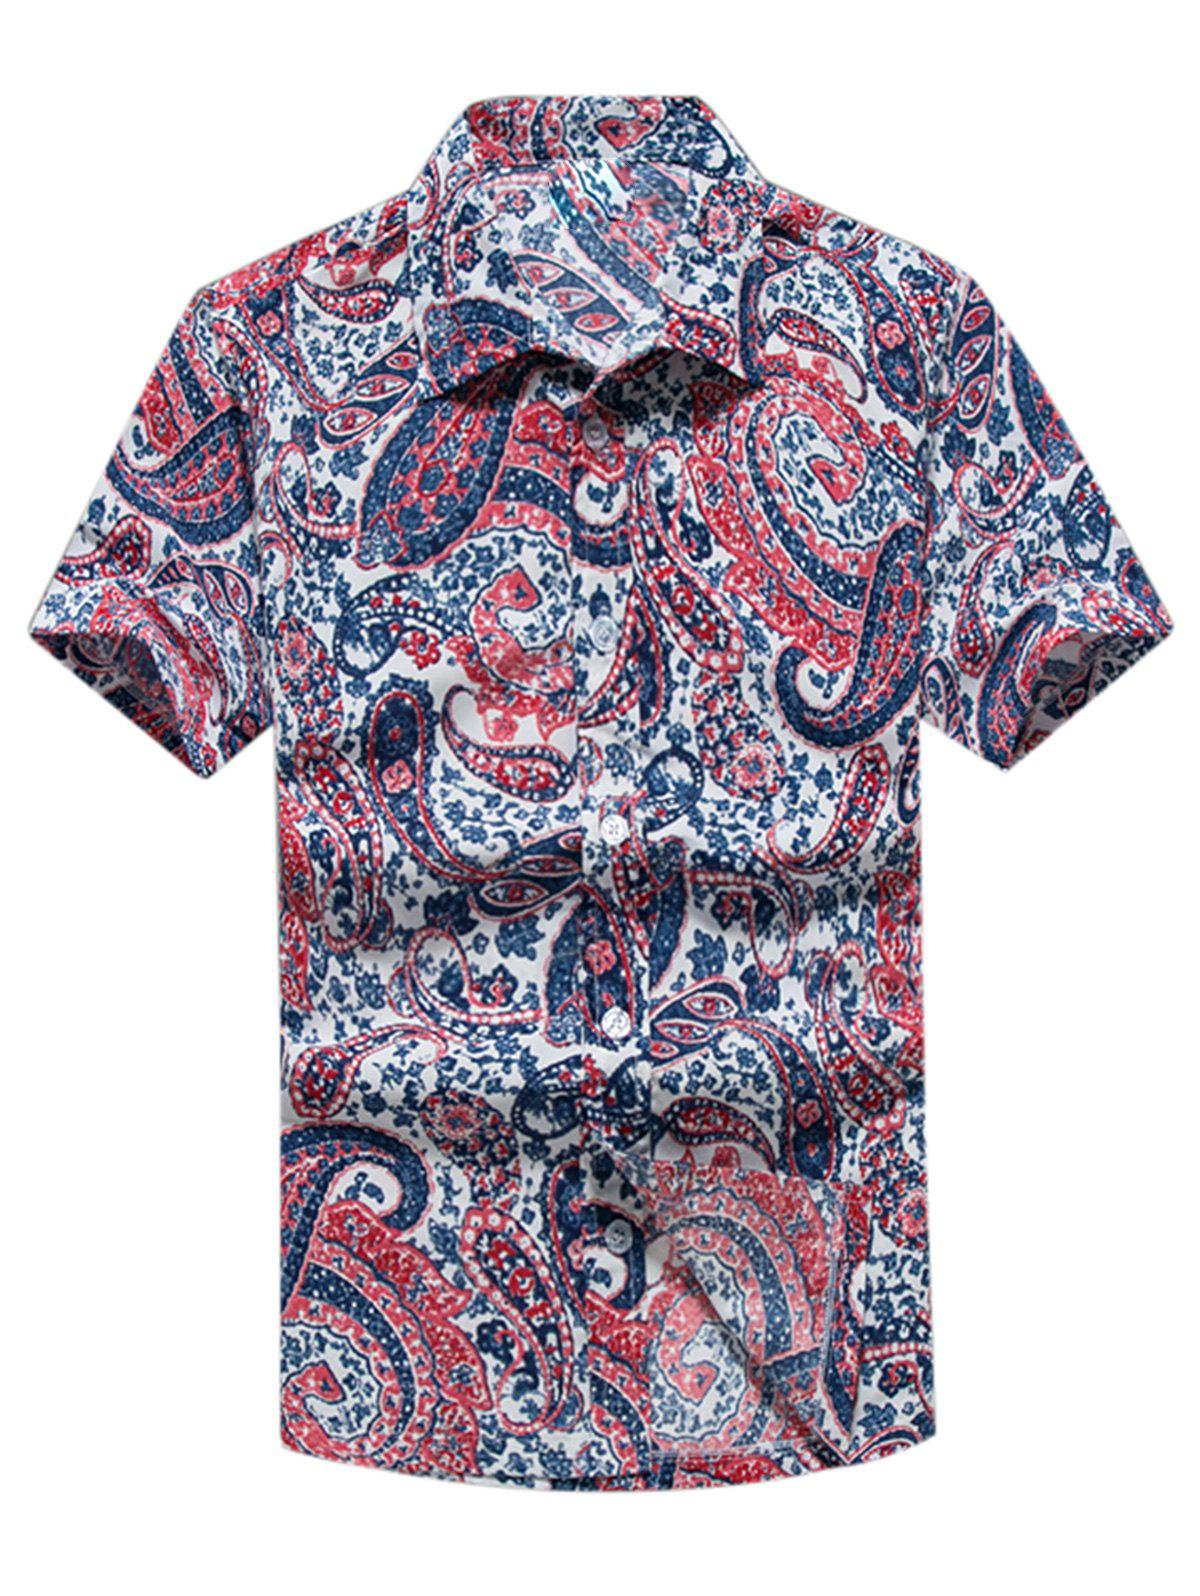 Casual Paisley Print Short Sleeve Shirt - RED 4XL